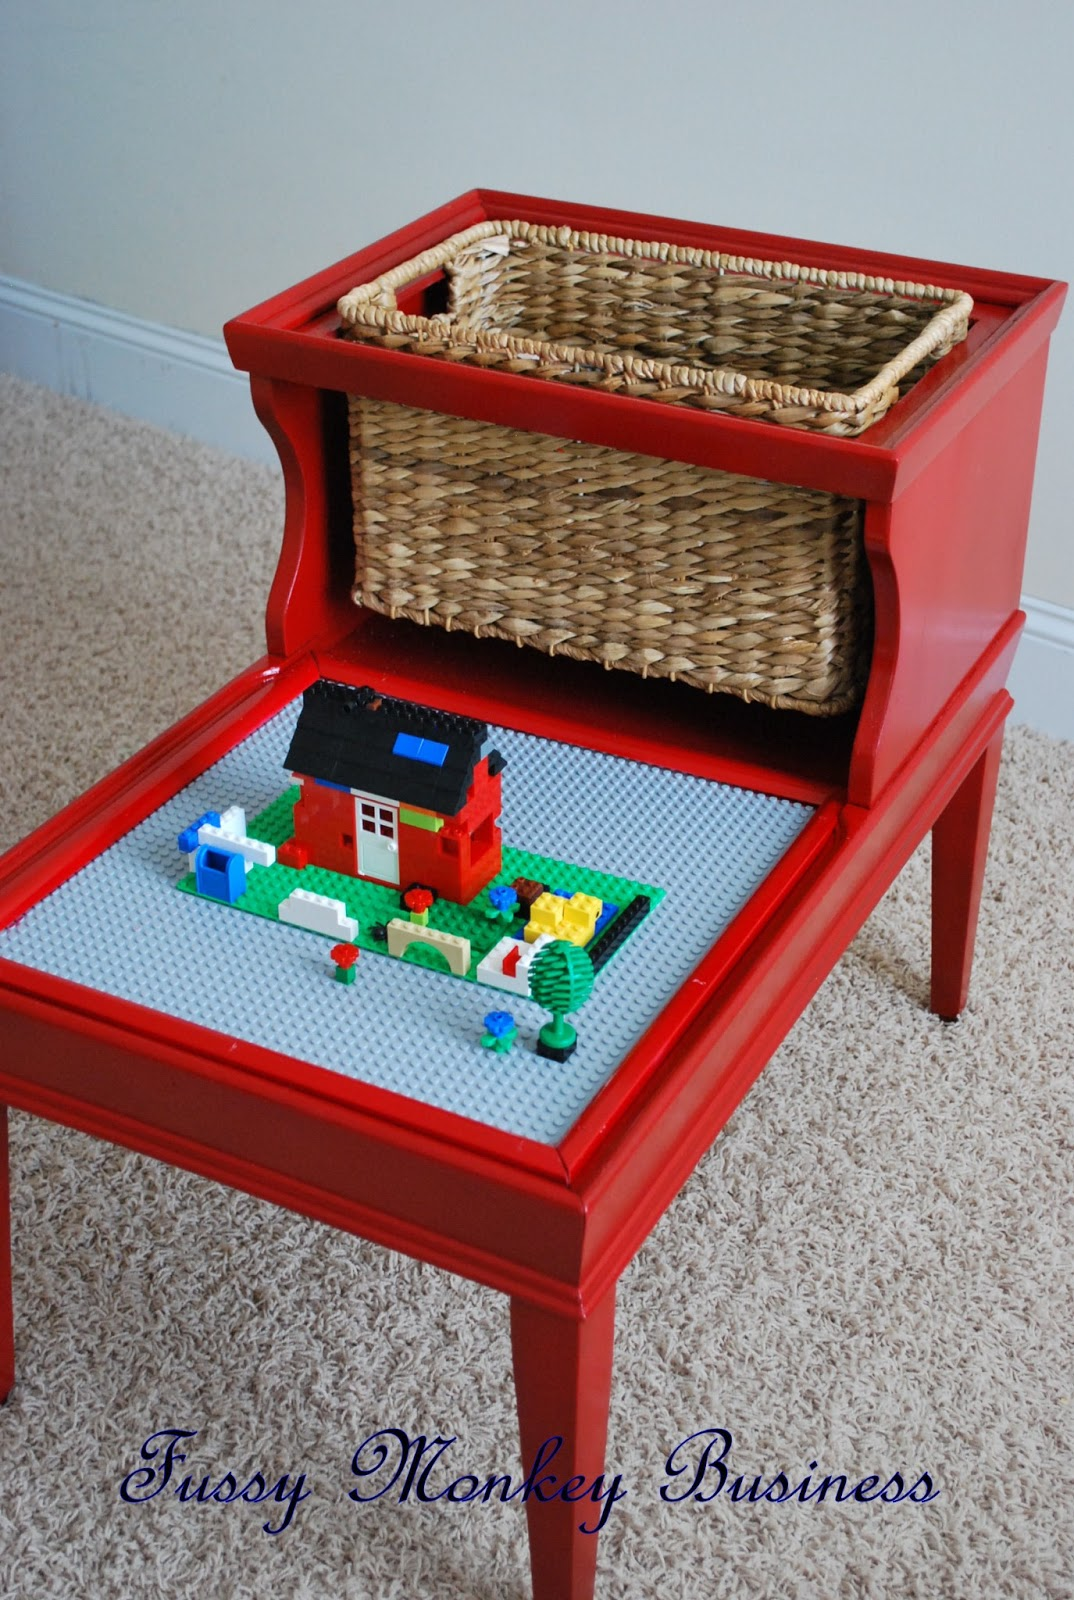 fussy monkey business lego table. Black Bedroom Furniture Sets. Home Design Ideas